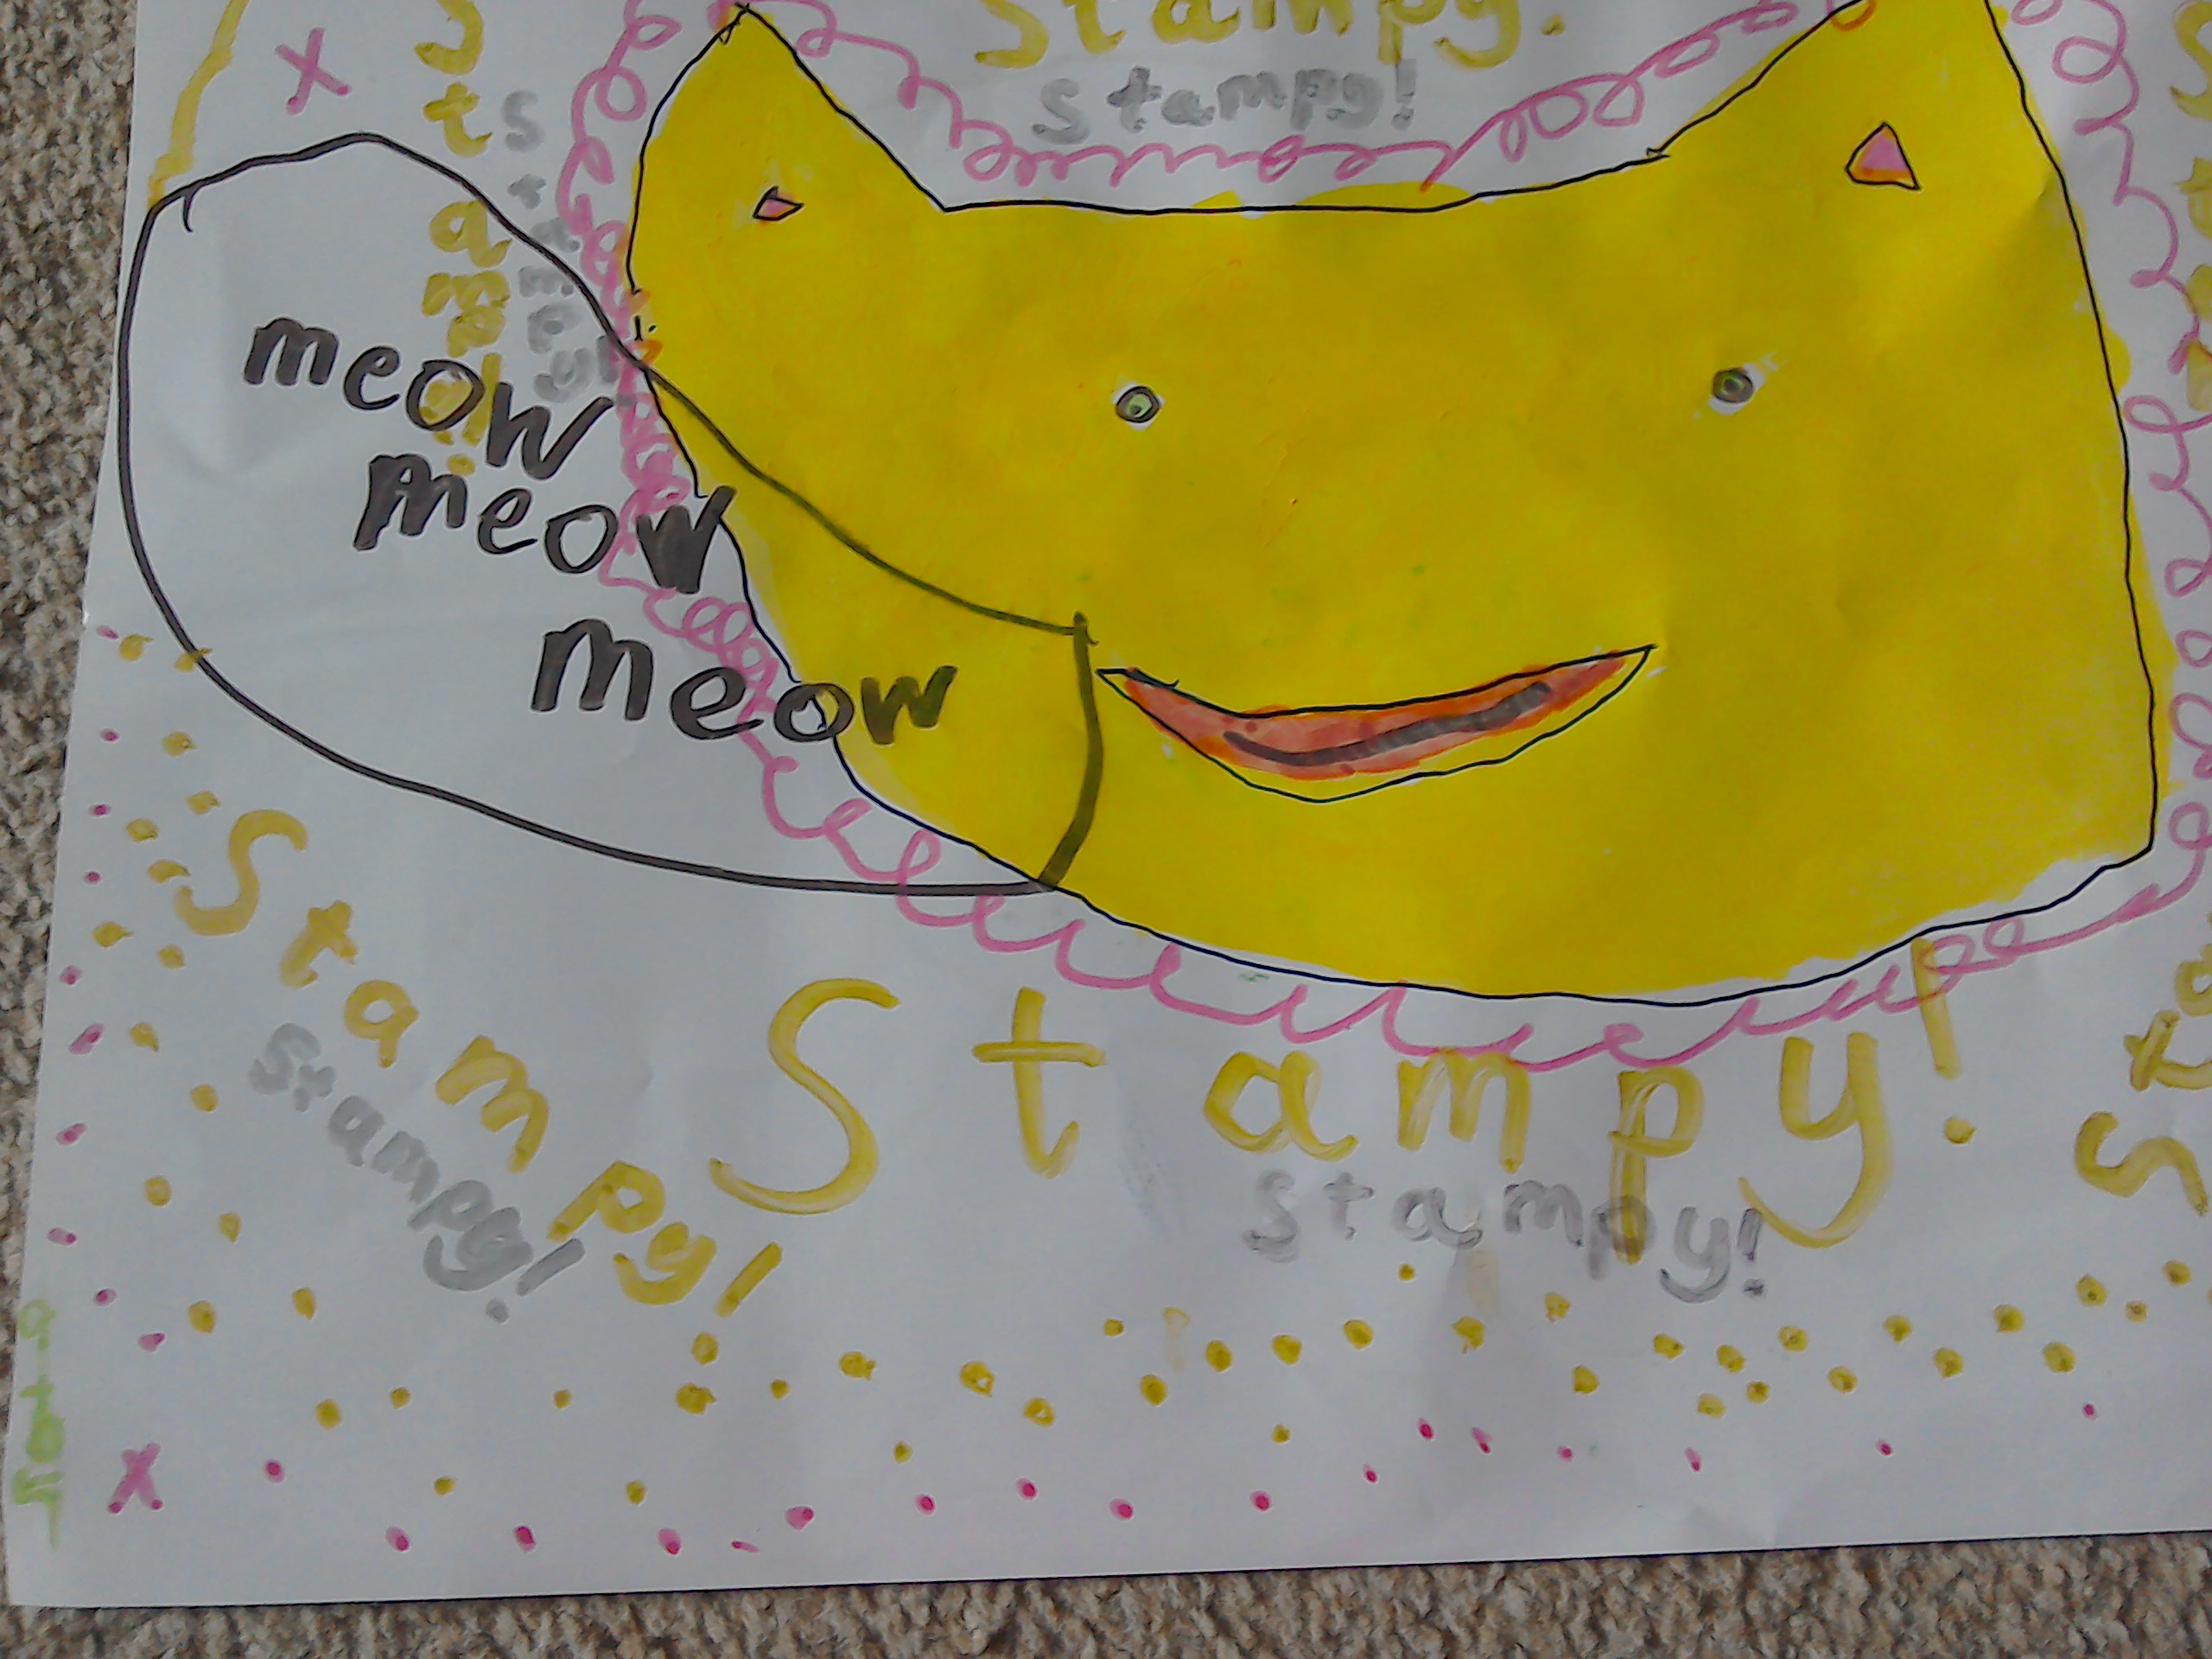 Lexie's drawing of Stampy